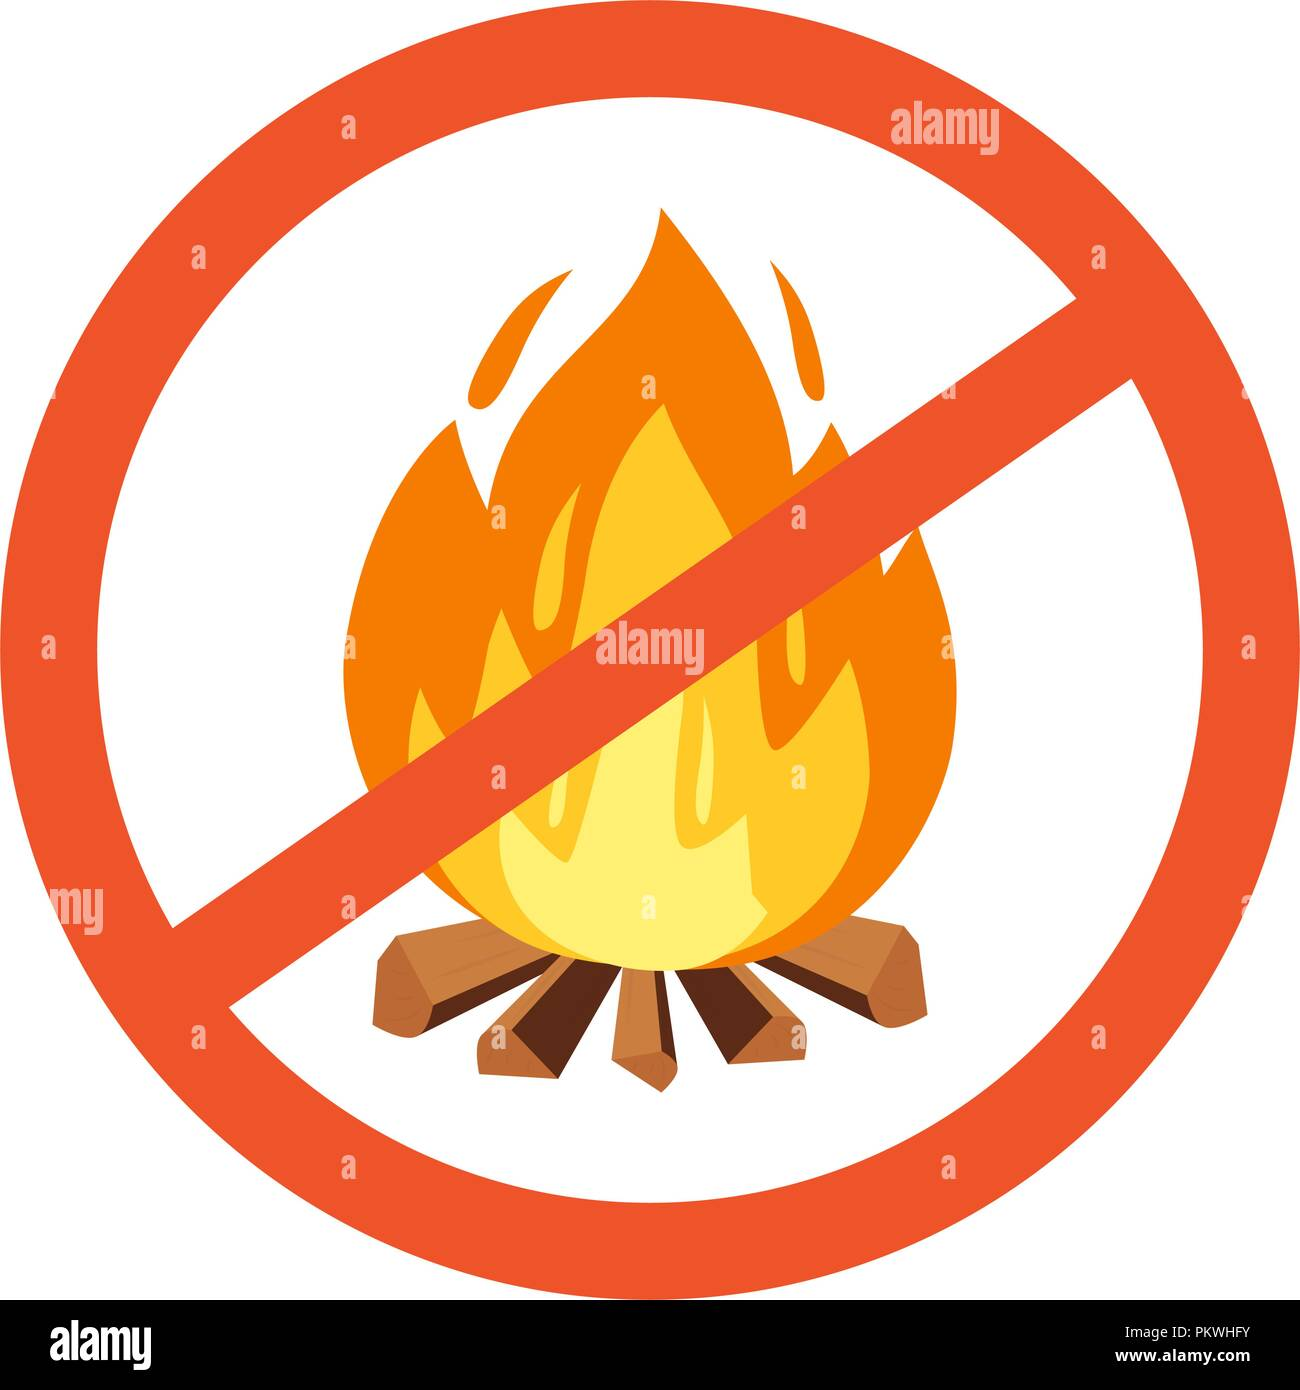 Vector flammable, hazard warning symbol design illustration. Forbidden to build a fire. Red line cross in circle with campfire - Stock Image